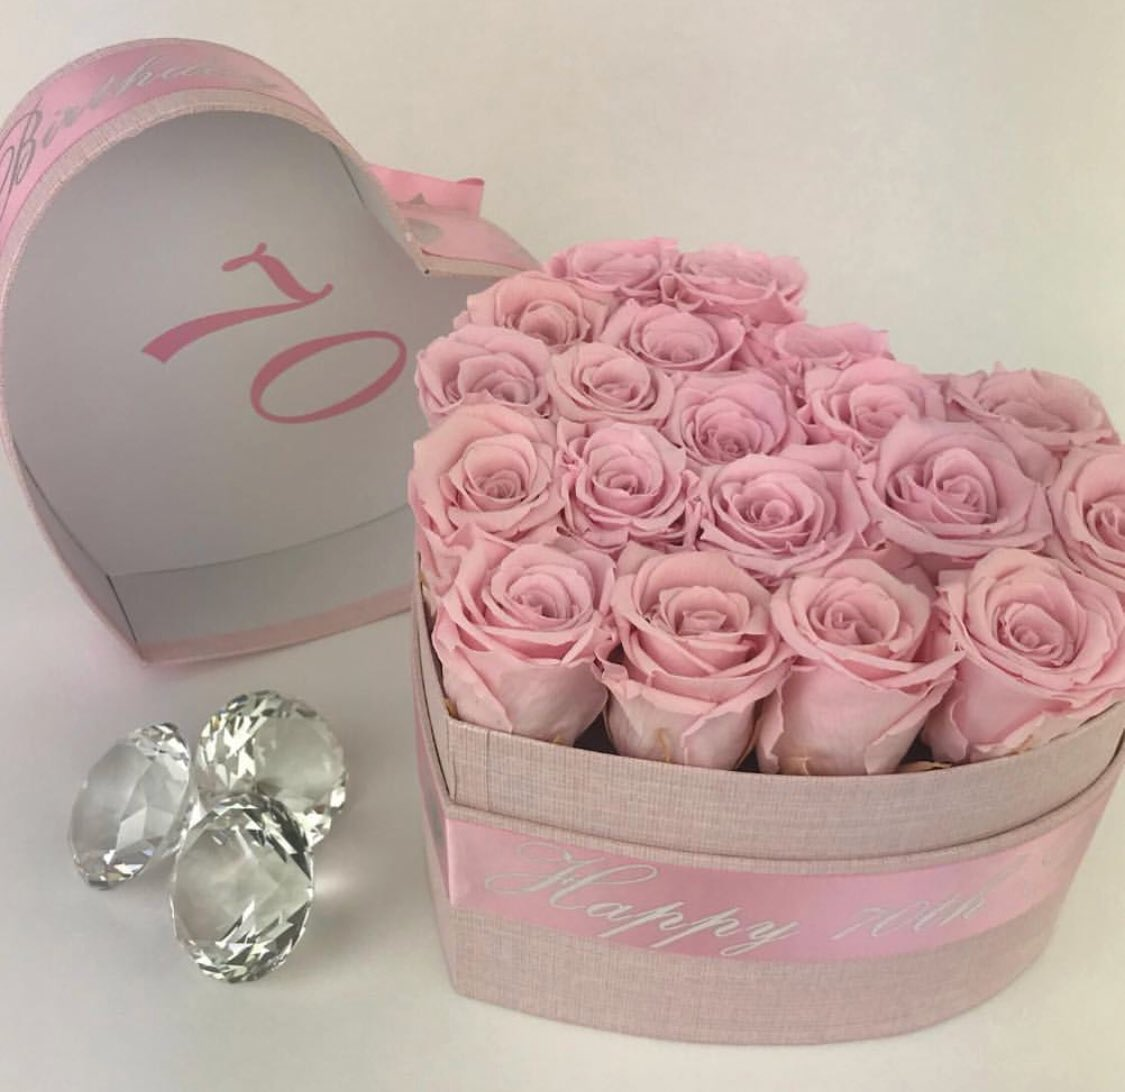 Pink Real Preserved One Year Lasting Roses Personalised Ribbon Printed Lids Available Http Foreverflowersuk Flowersinabox Sweetheart